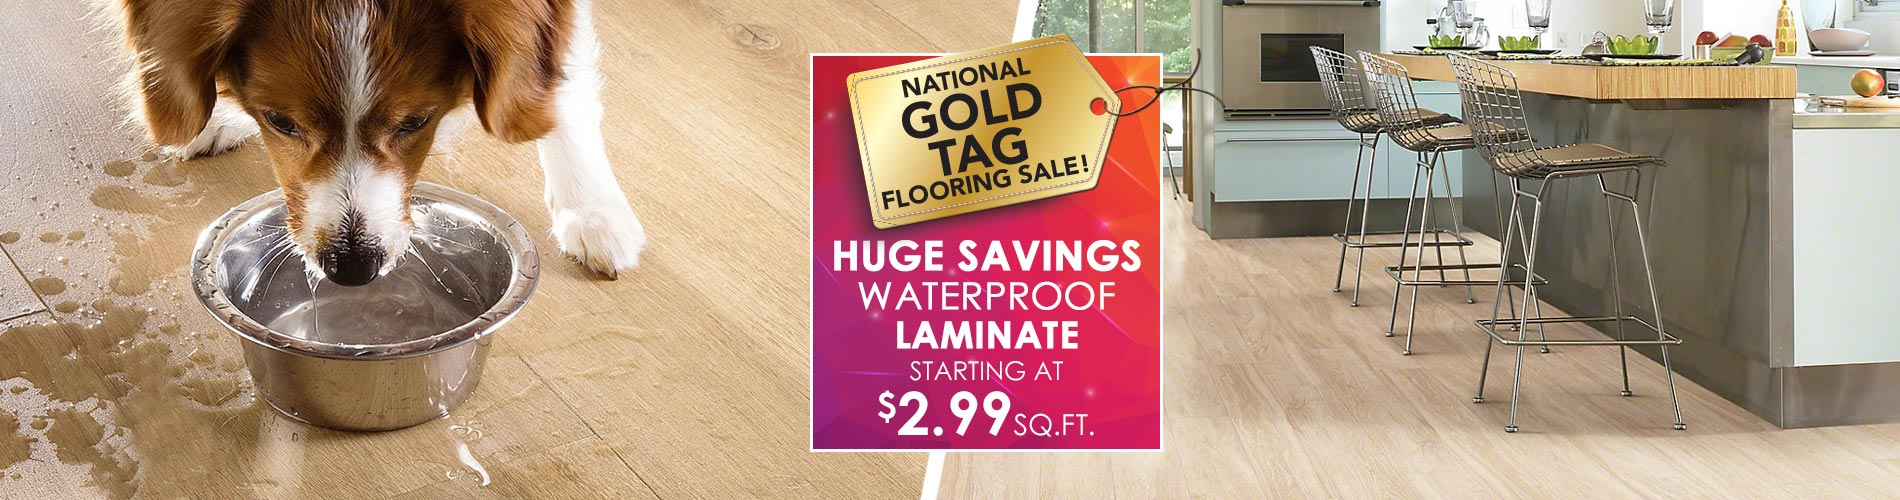 Waterproof laminate starting at $2.99 sq.ft.